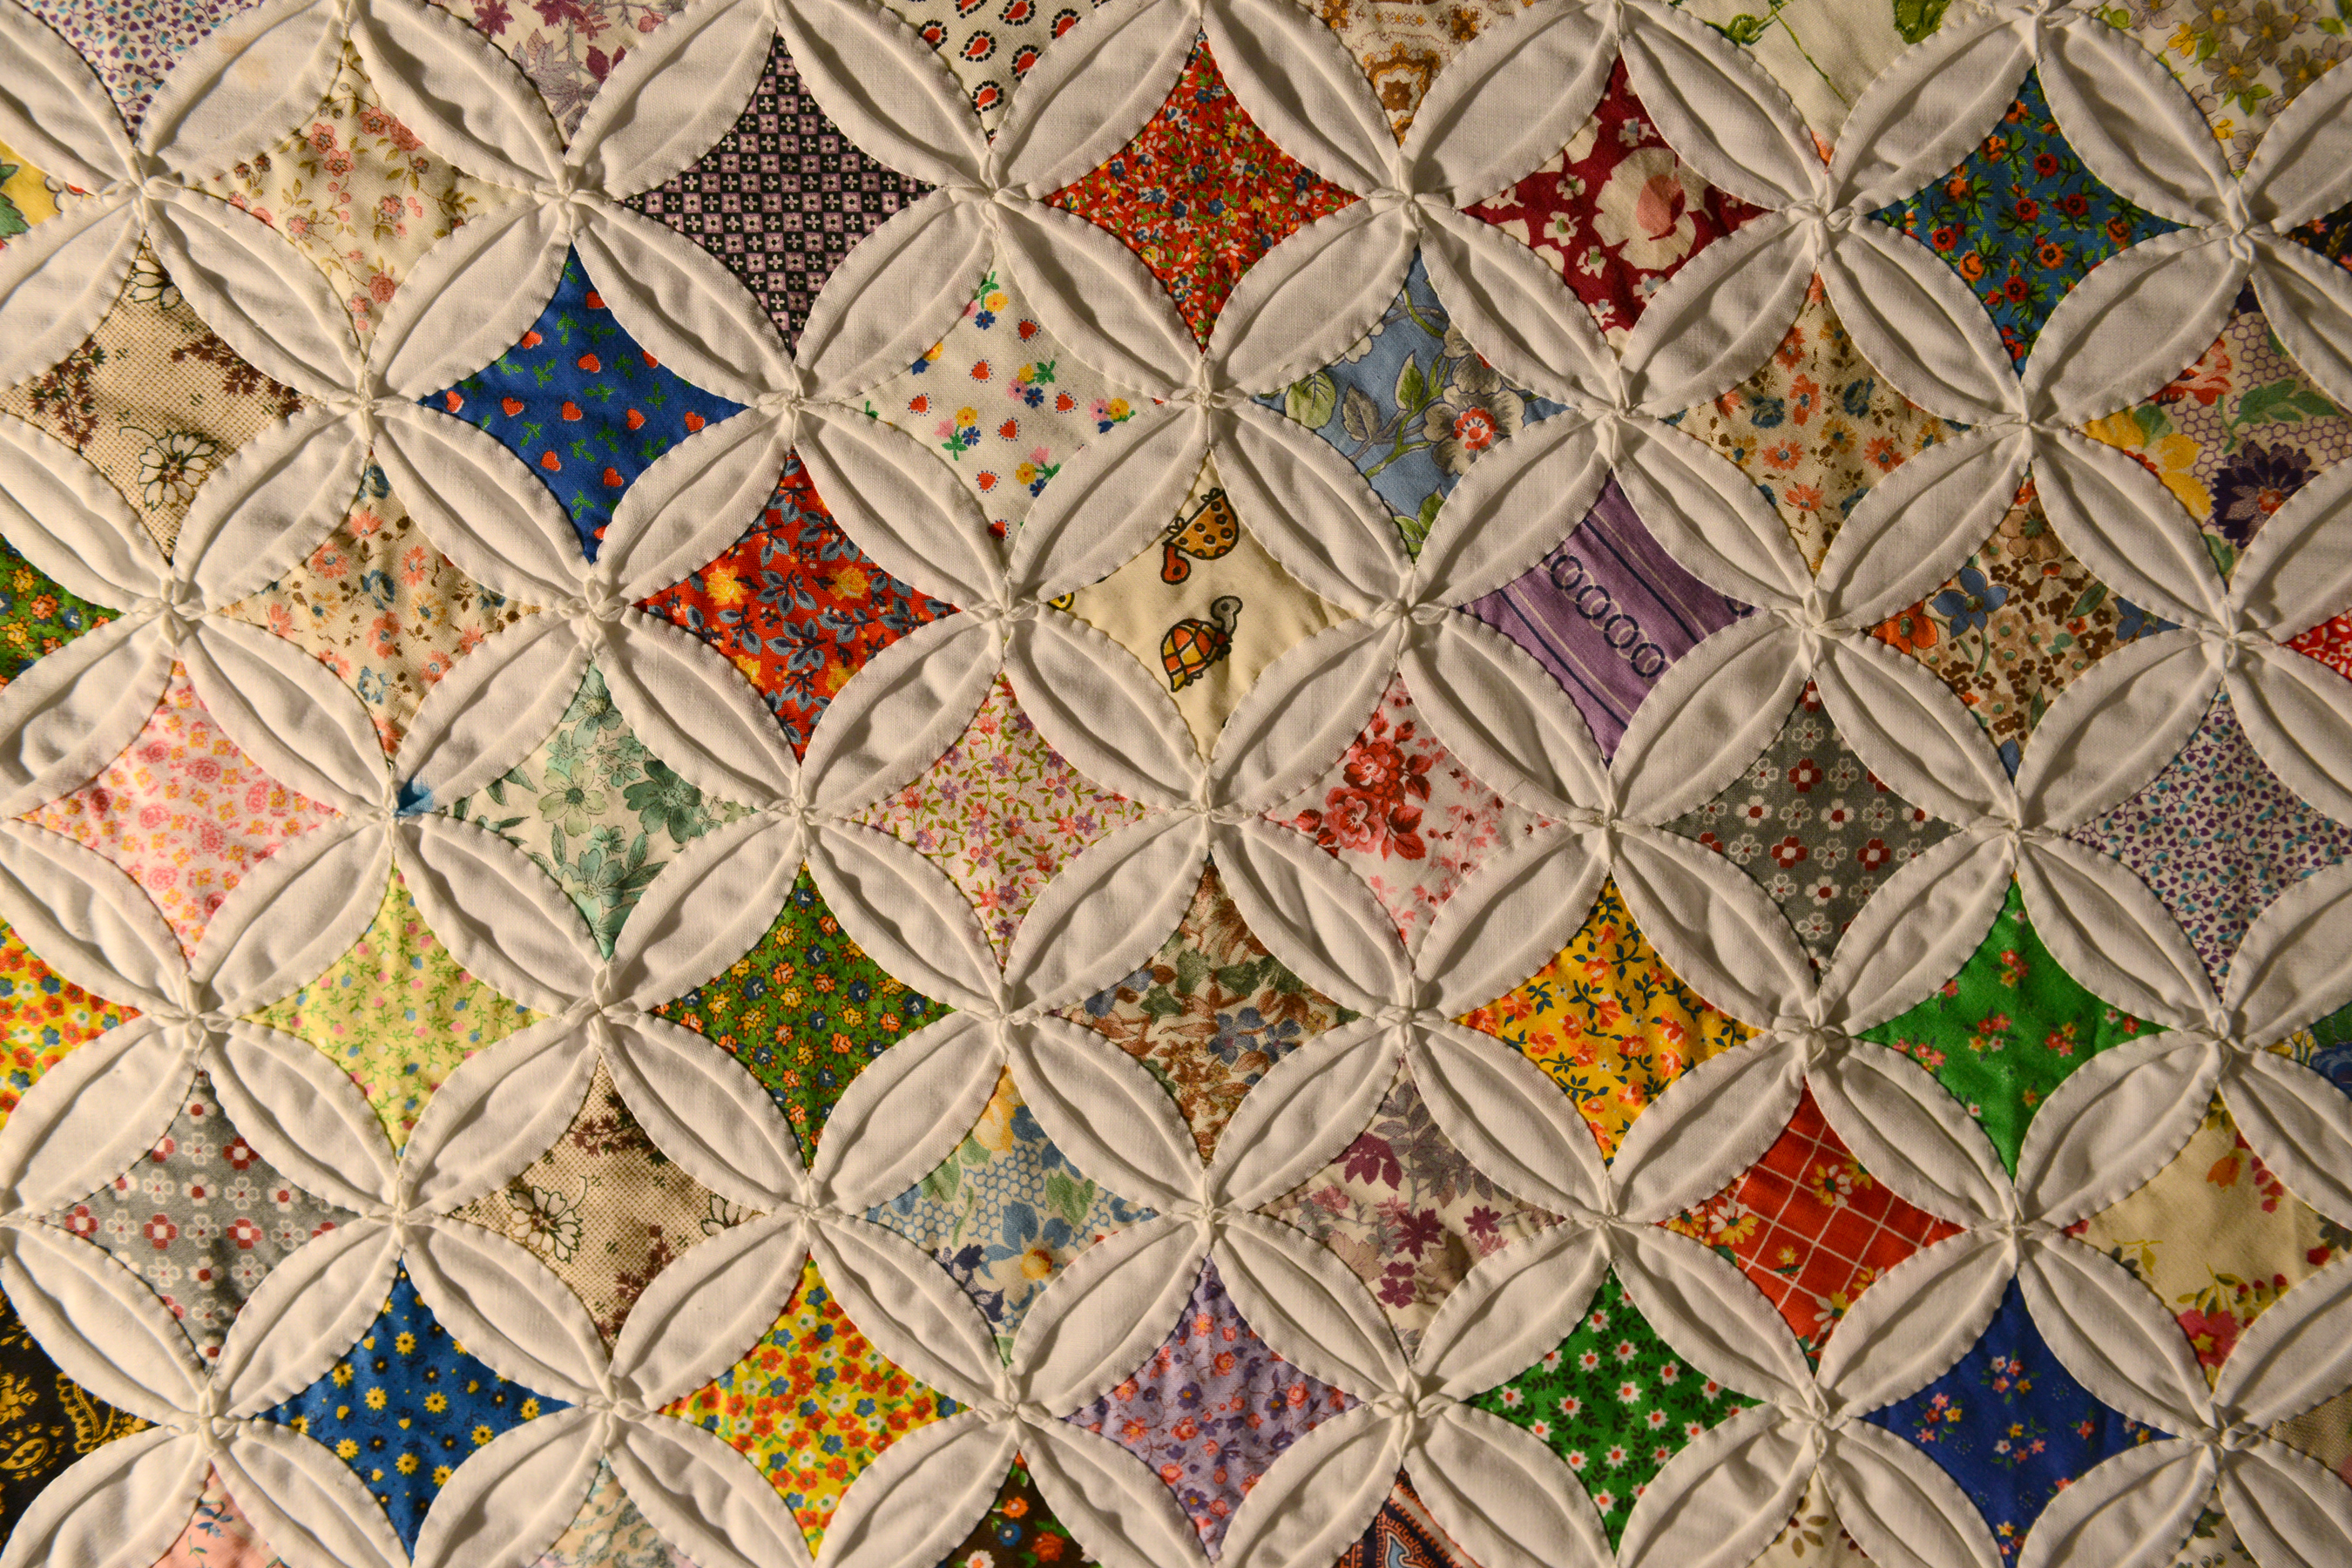 Detail of 1981 cathedral window quilt | Virginia Historical ... : cathedral window quilting - Adamdwight.com